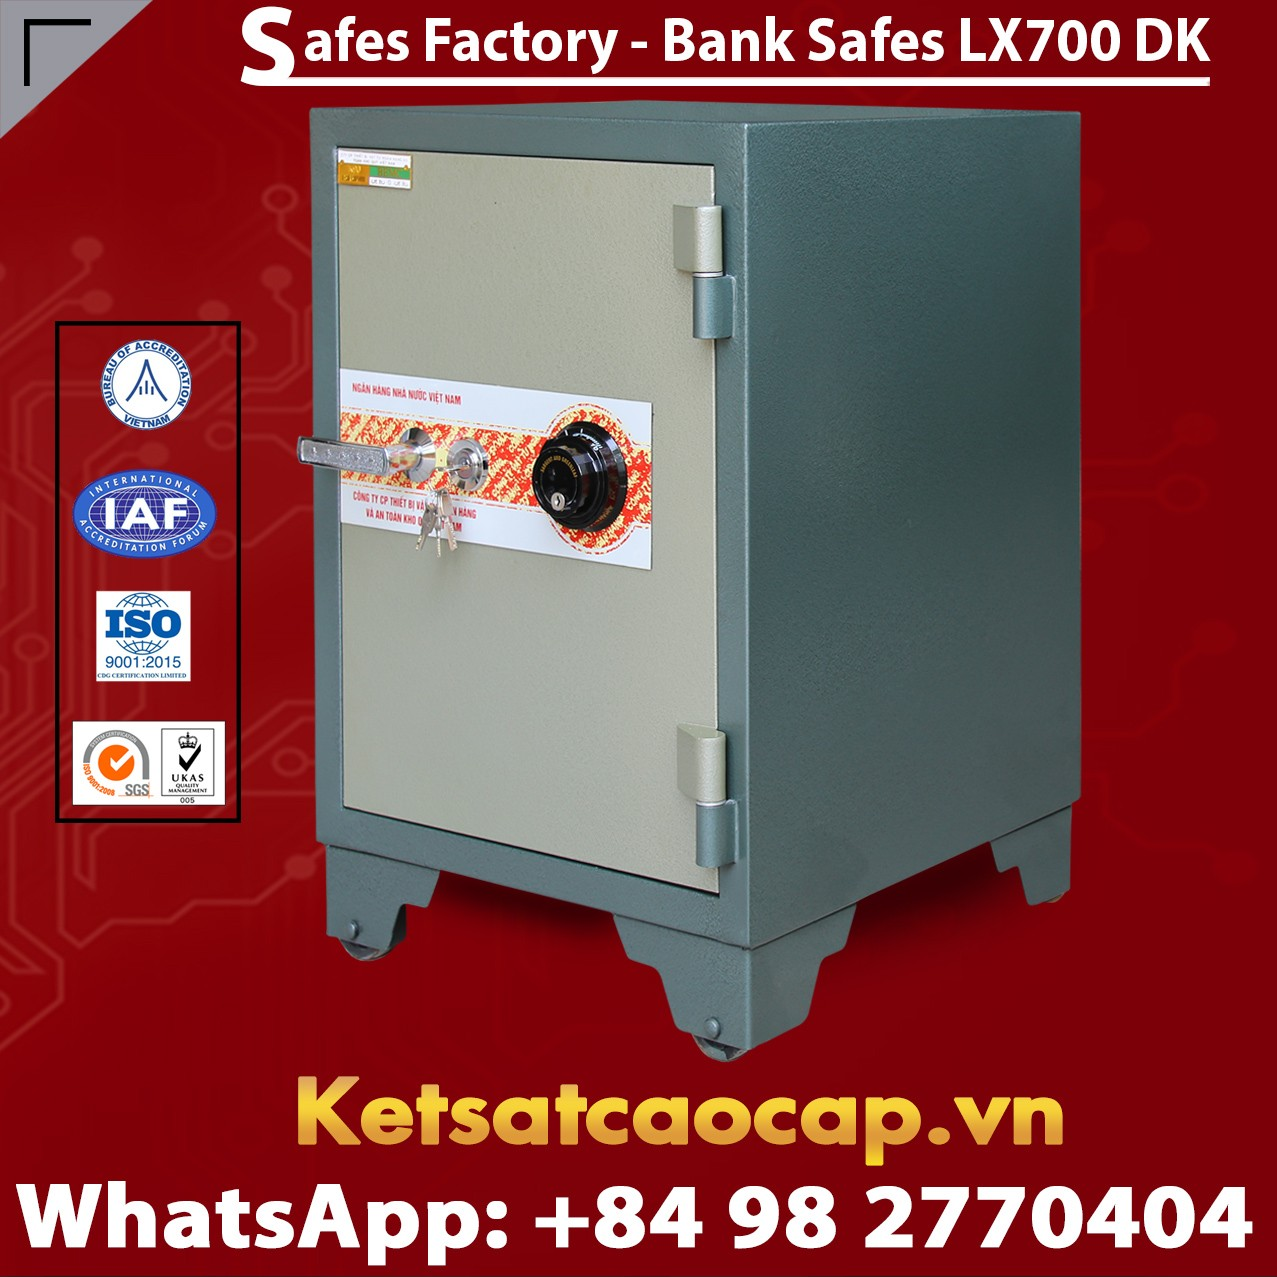 Bank Safes LX700 DK Luxurious Design High Quality Secure Bank Safe Box